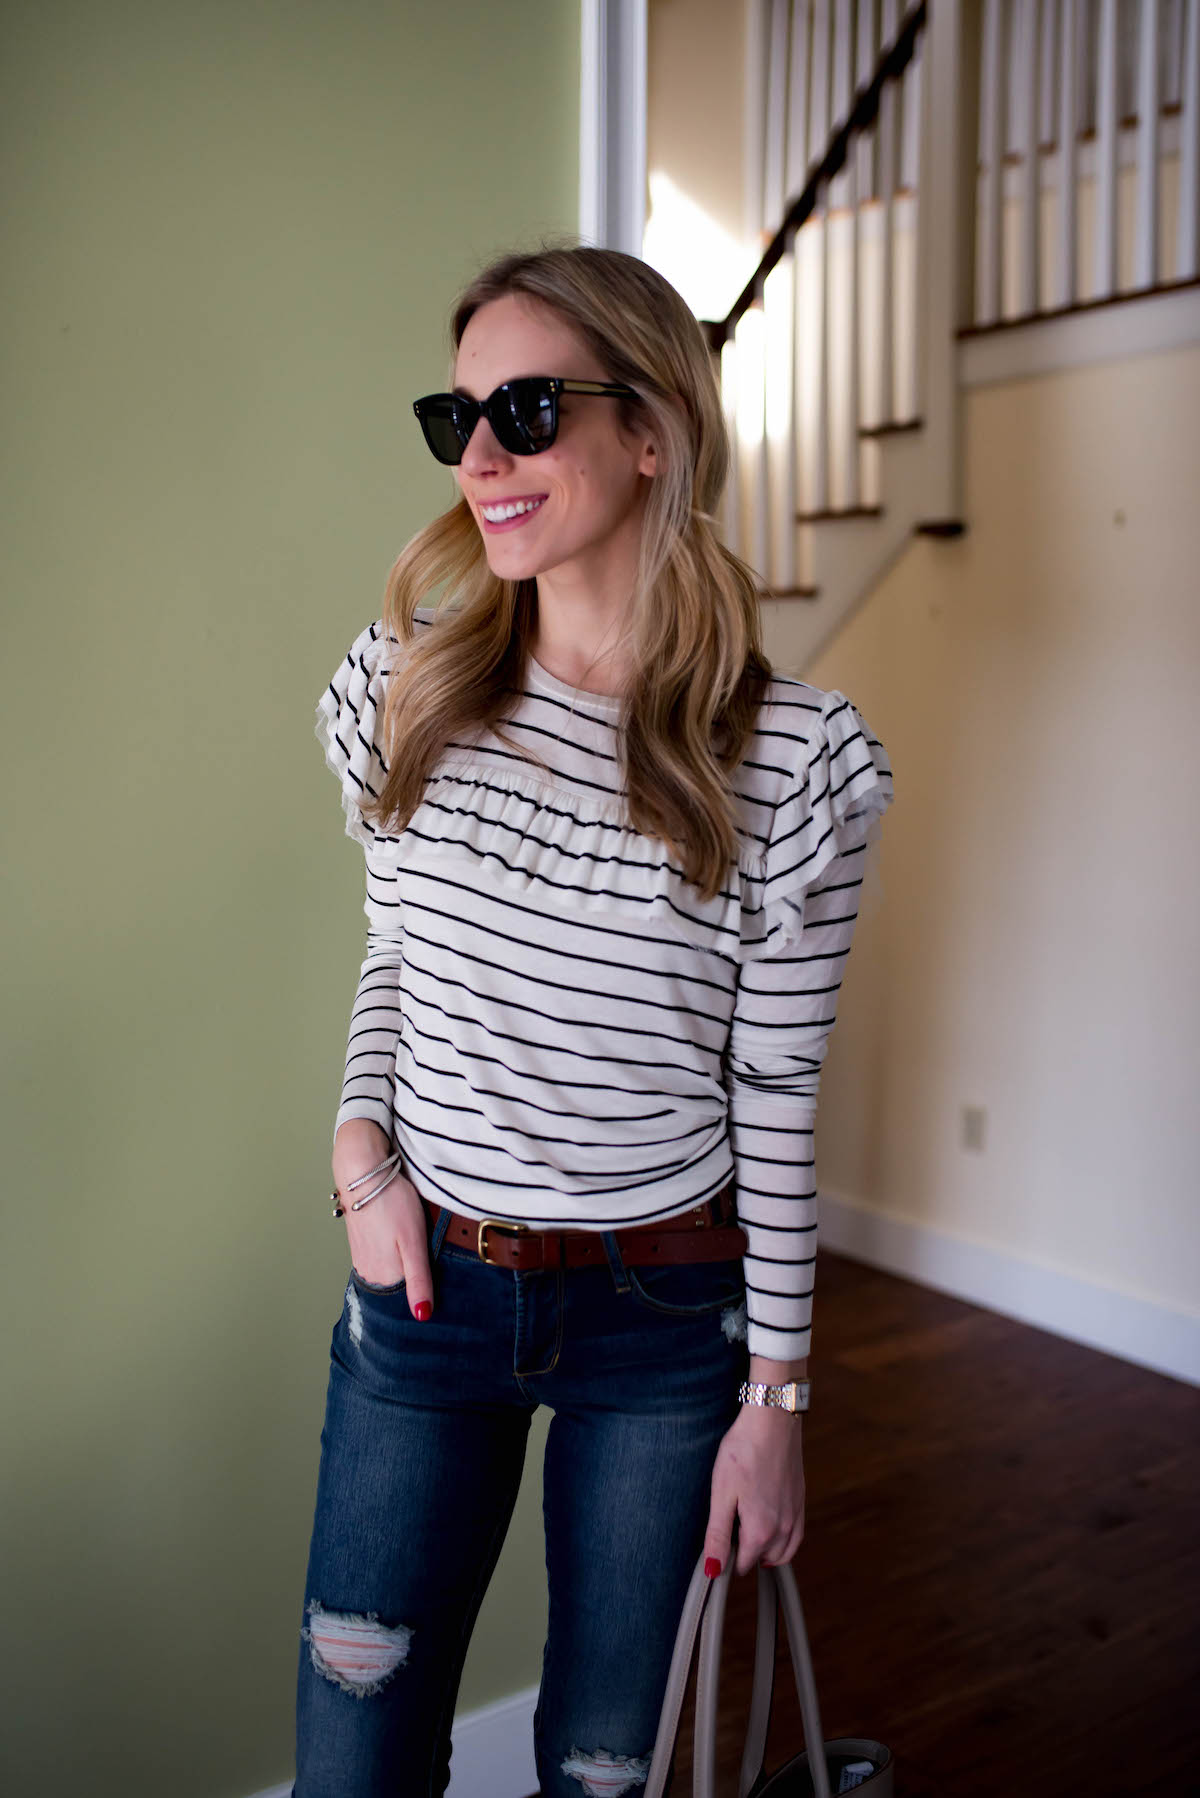 Classic Stripe Shirt & Distressed Denim